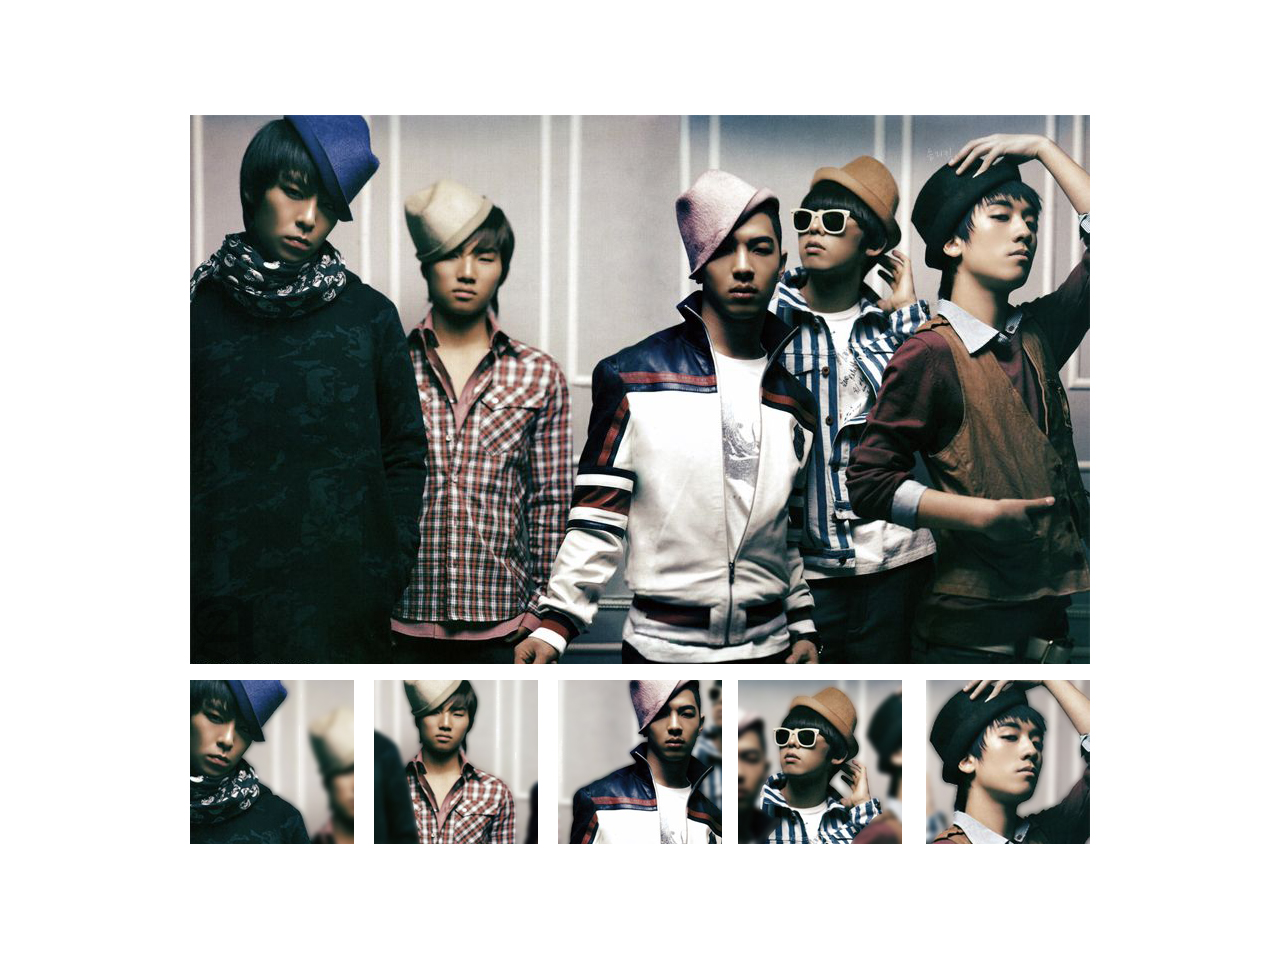 Big Bang wallpaper  kpop 4ever Wallpaper 32174973  Fanpop